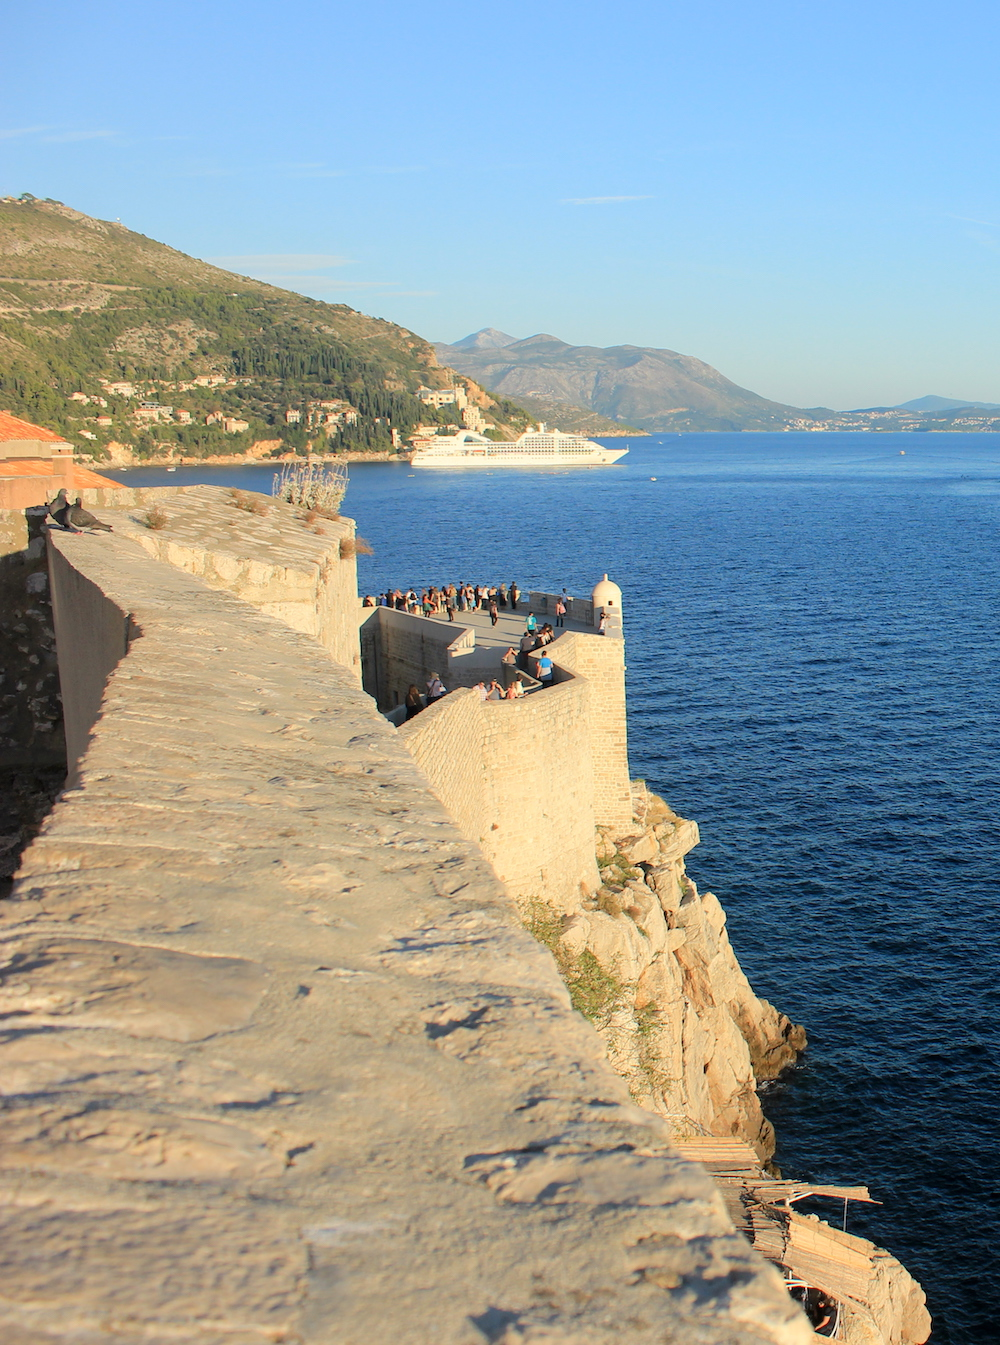 City walls of Dubrovnik, Croatia | Photo credit: Rose Spaziani